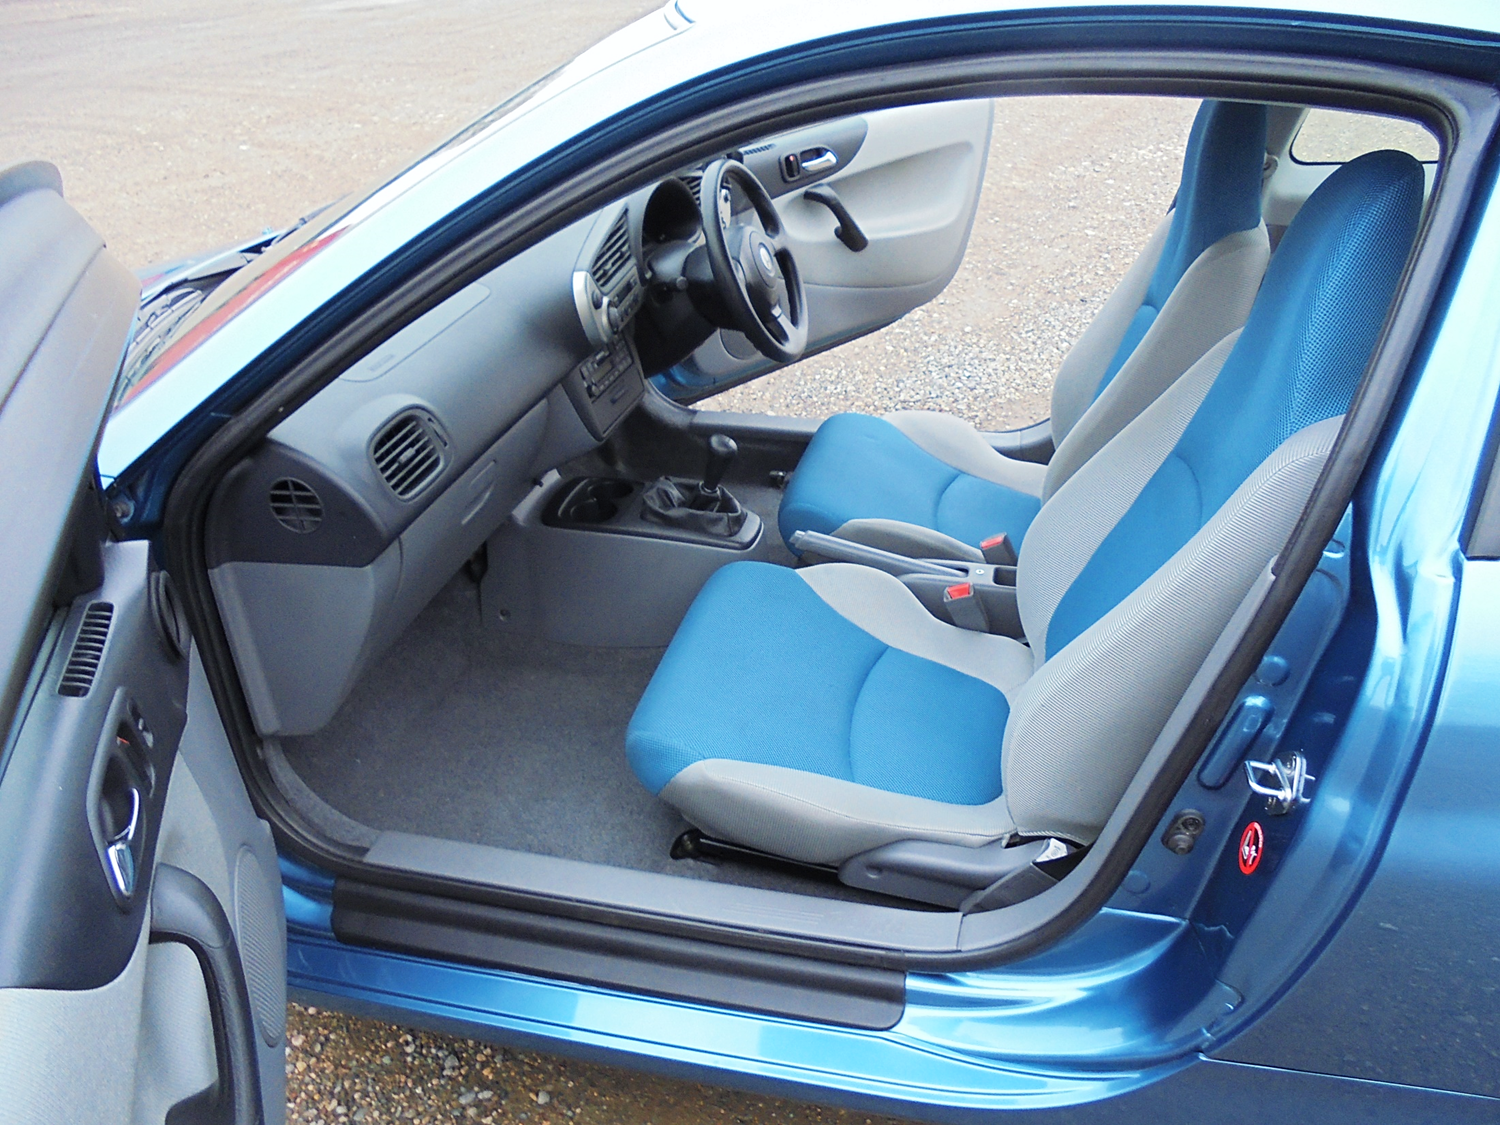 Honda Insight Ze 1 2002 Hybrid Blue For Sale (picture 5 of 6)